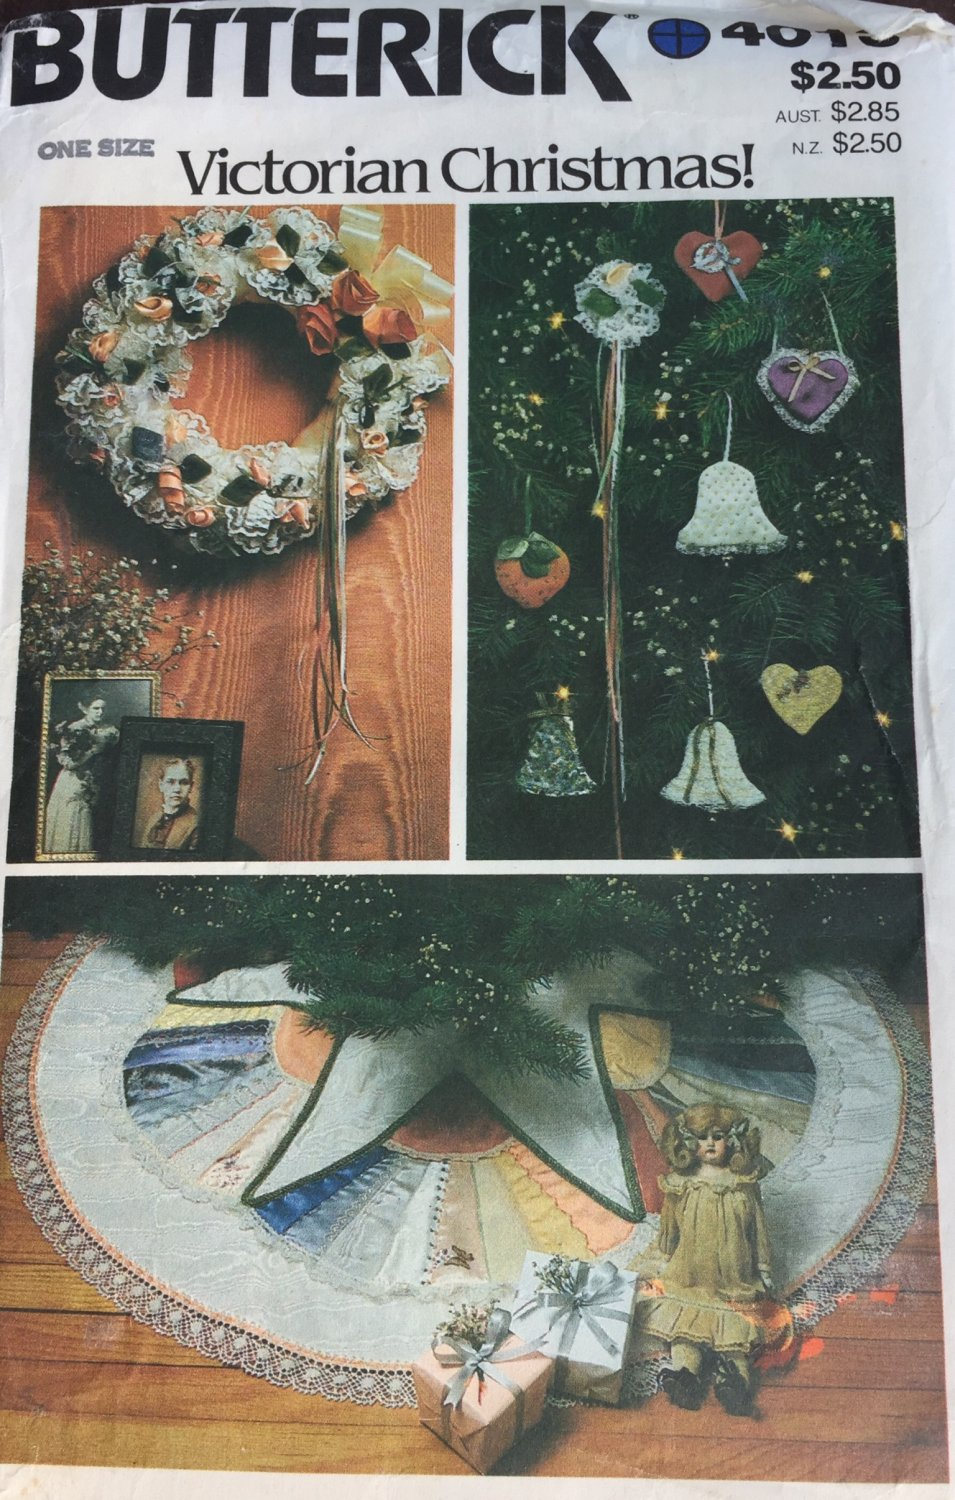 Victorian Christmas Holiday Tree Skirt Ornaments Butterick 4013 Sewing Pattern